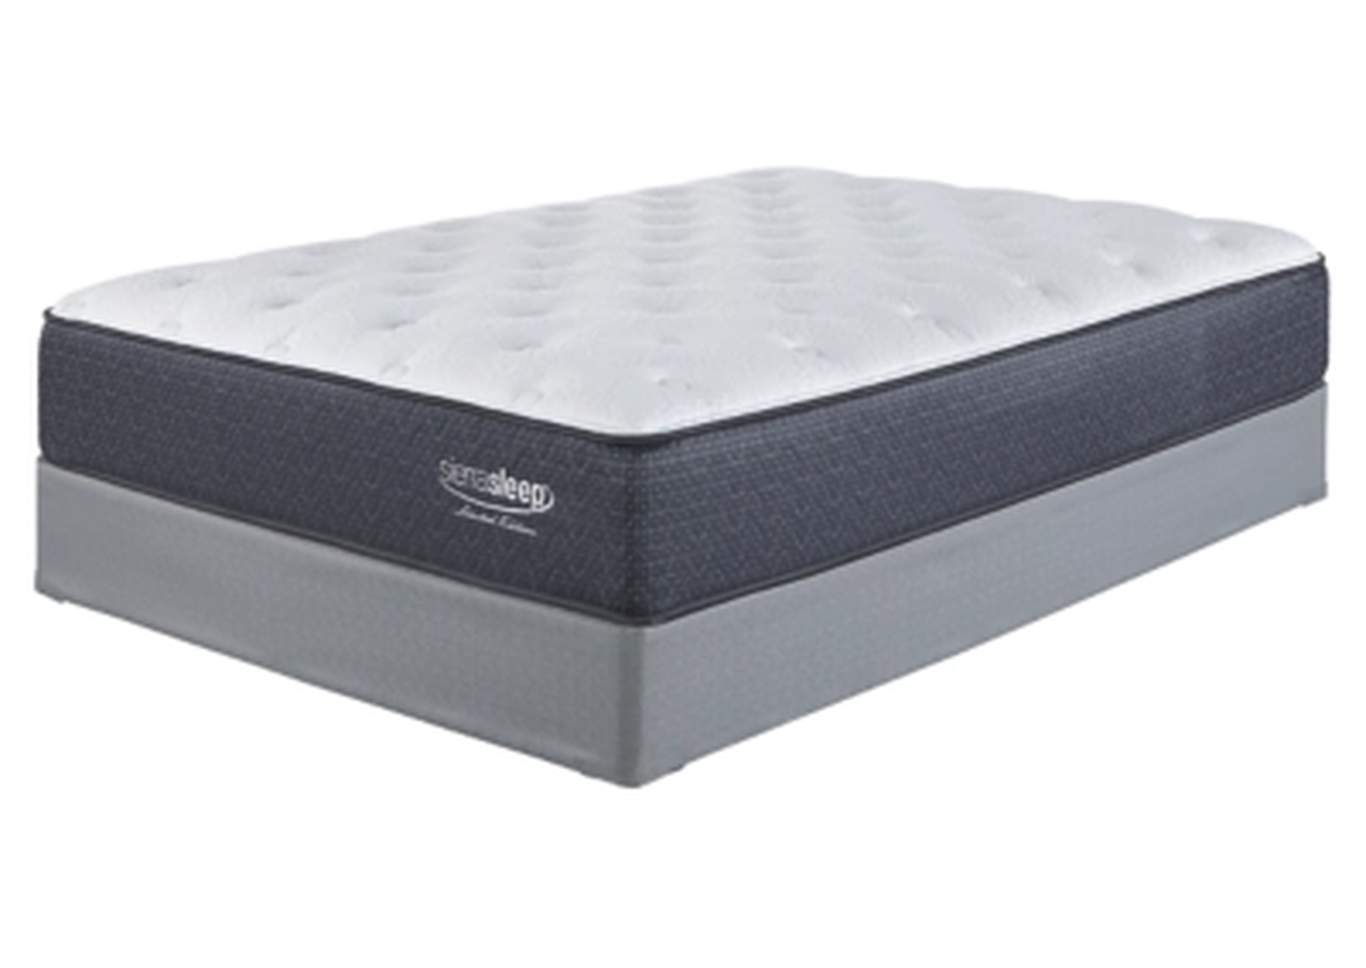 Limited Edition Plush White King Mattress,Sierra Sleep